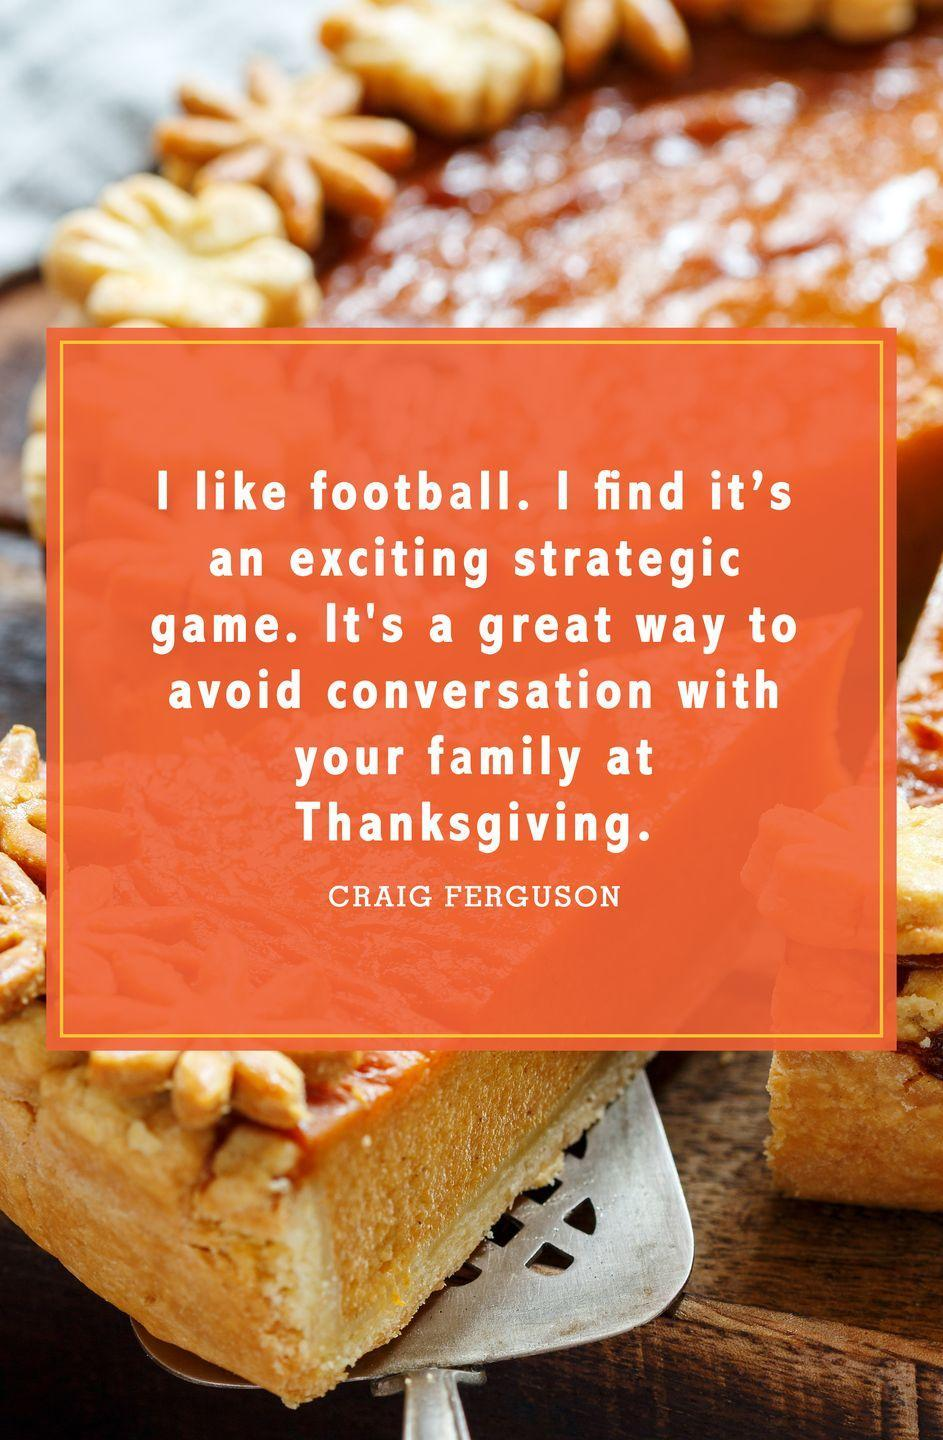 """<p>""""I like football. I find it's an exciting strategic game. It's a great way to avoid conversation with your family at Thanksgiving.""""</p>"""